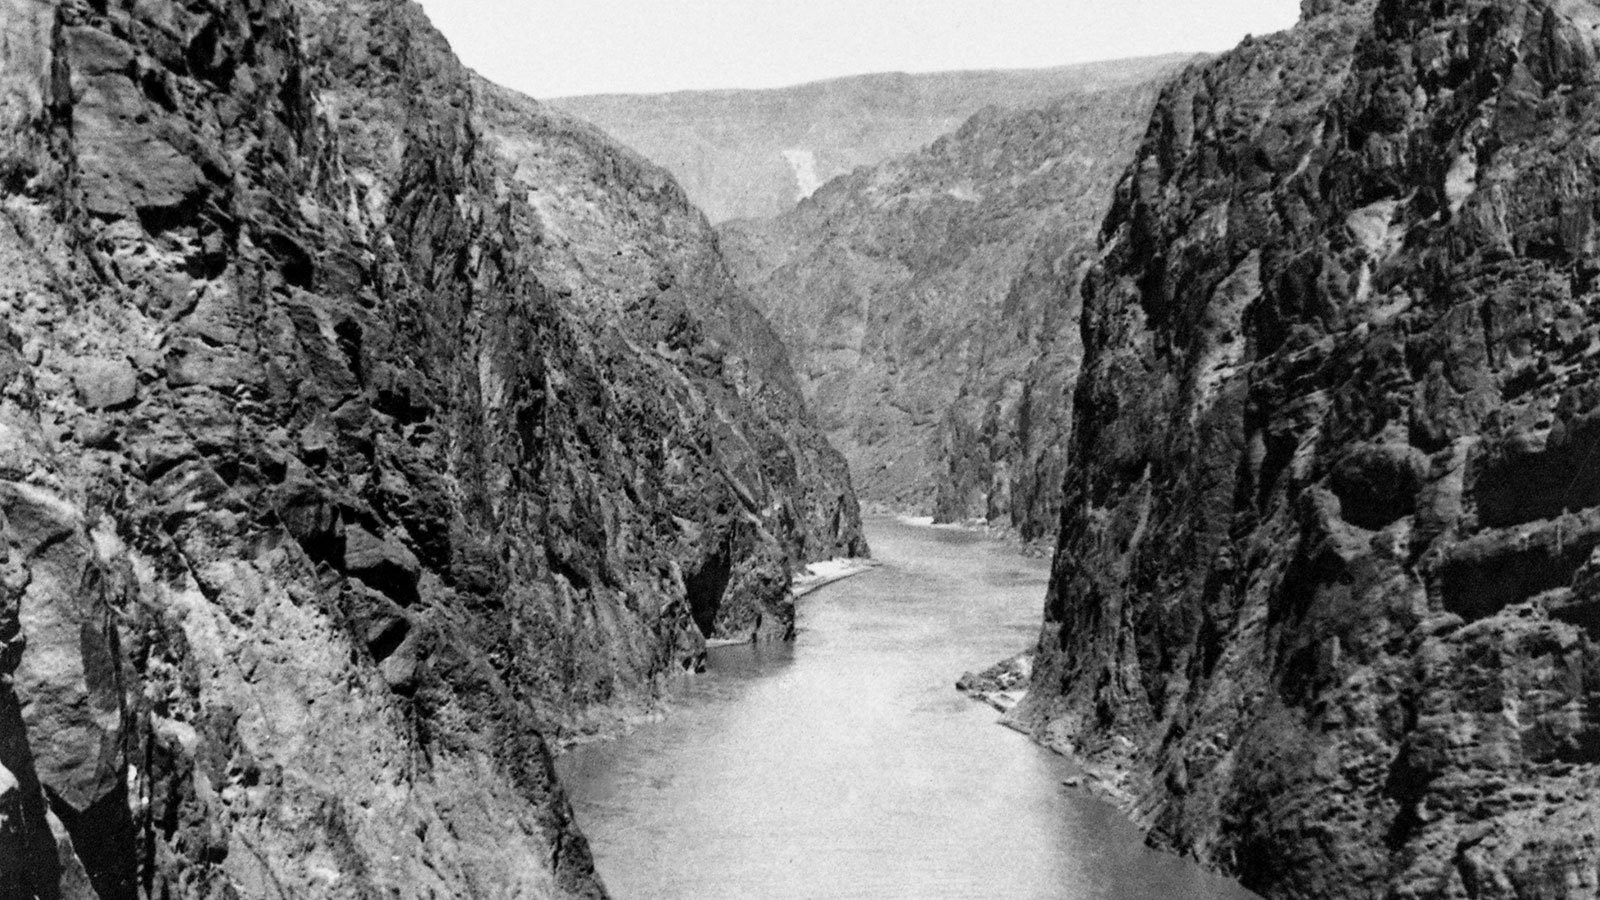 The Colorado River runs through Black Canyon, prior to construction on the Hoover Dam